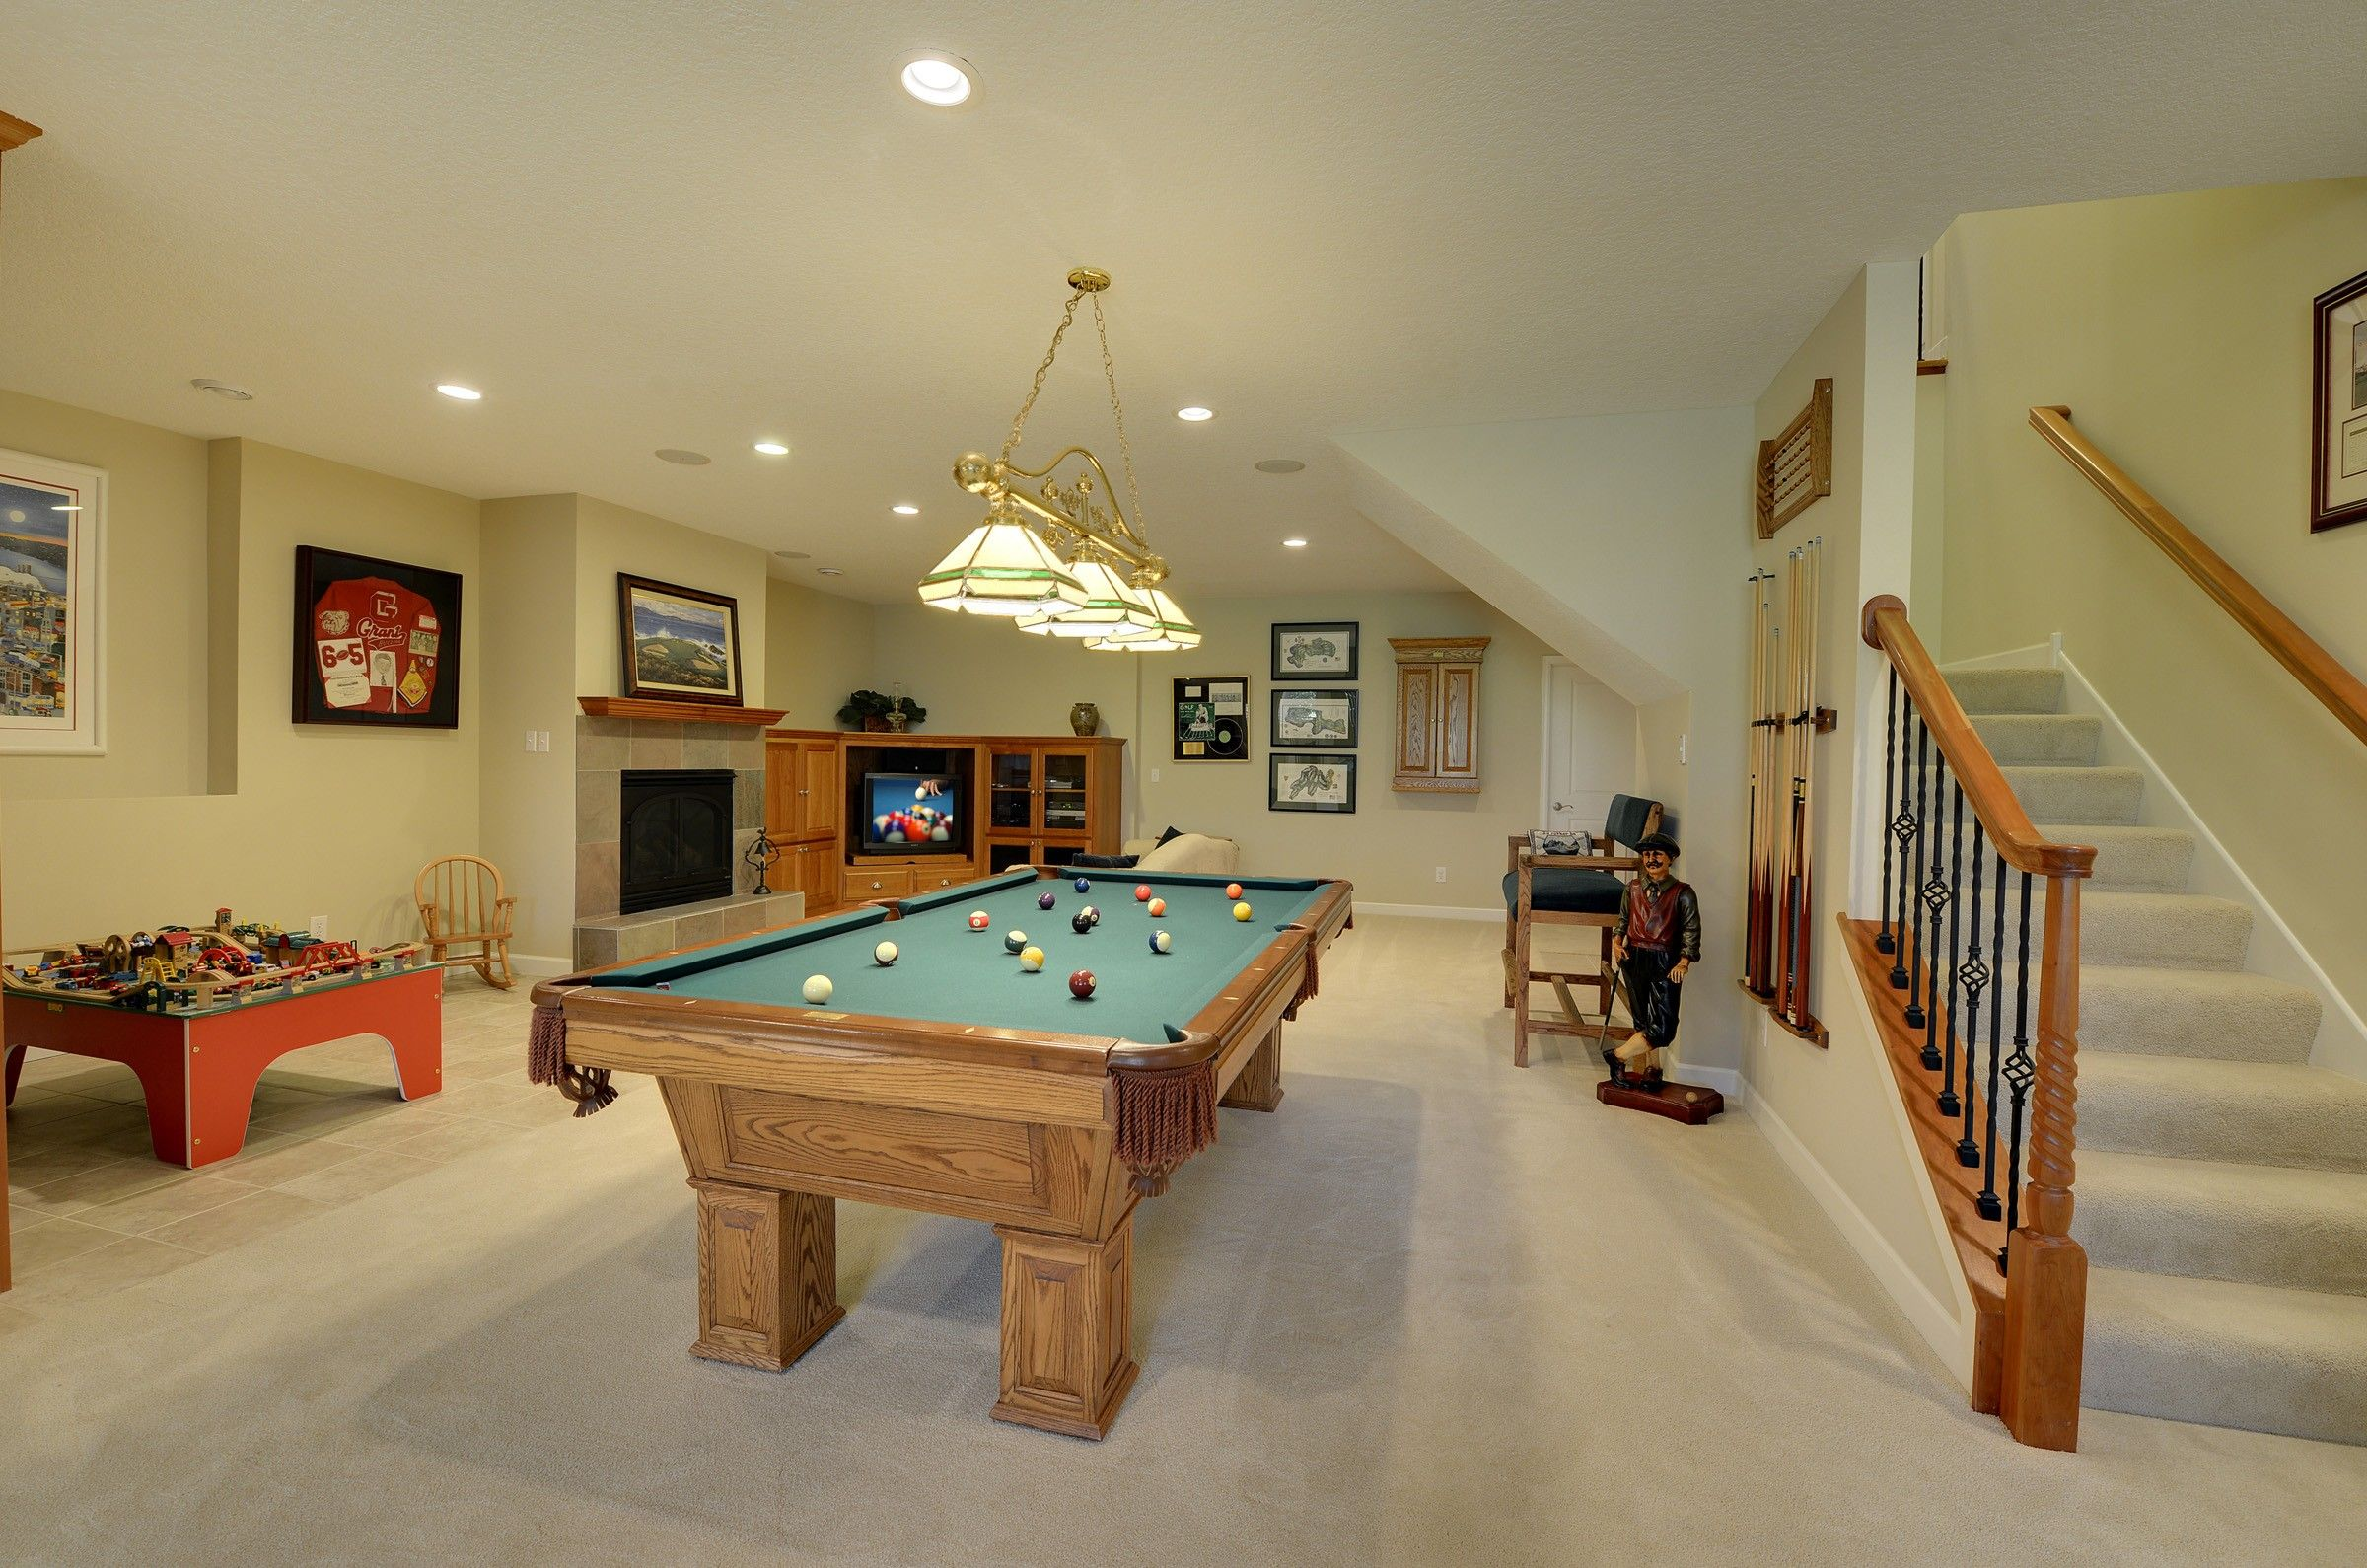 Basement game room home ideas basement pinterest - Basement game room ideas ...